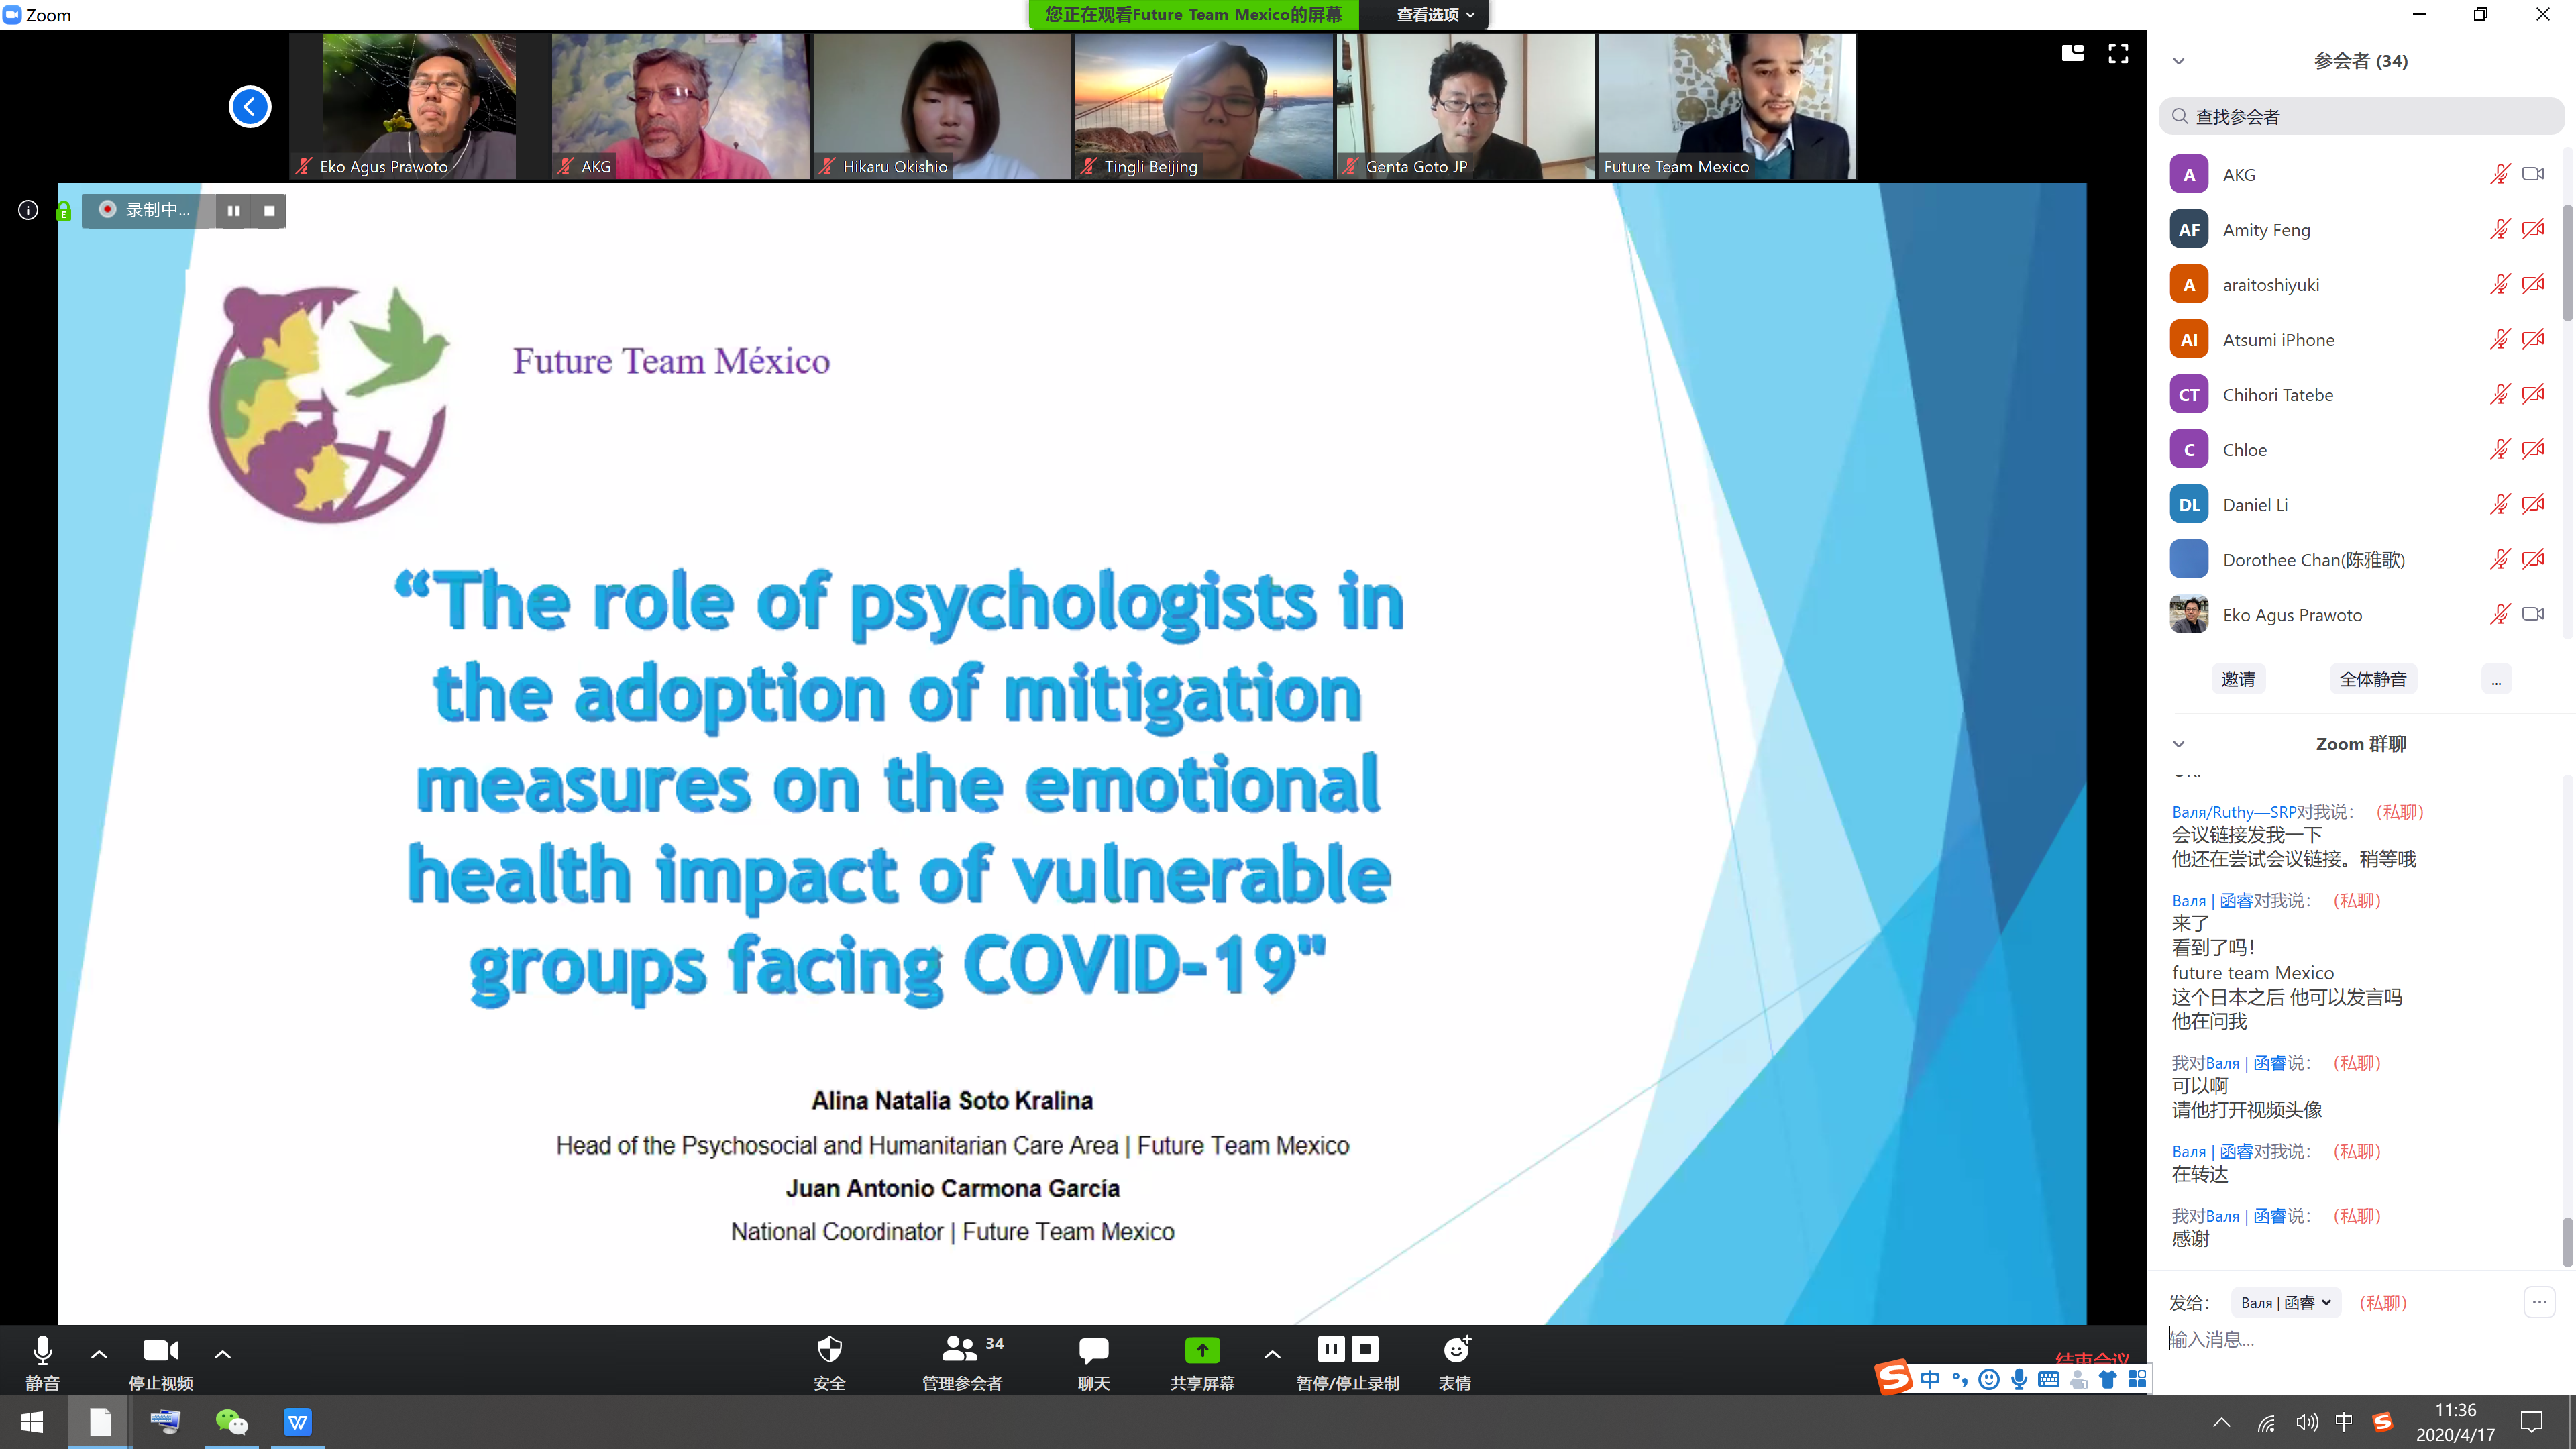 IACCR Meeting 0417: Coping with Psychological Crisis under Epidemic, Key Takeaways